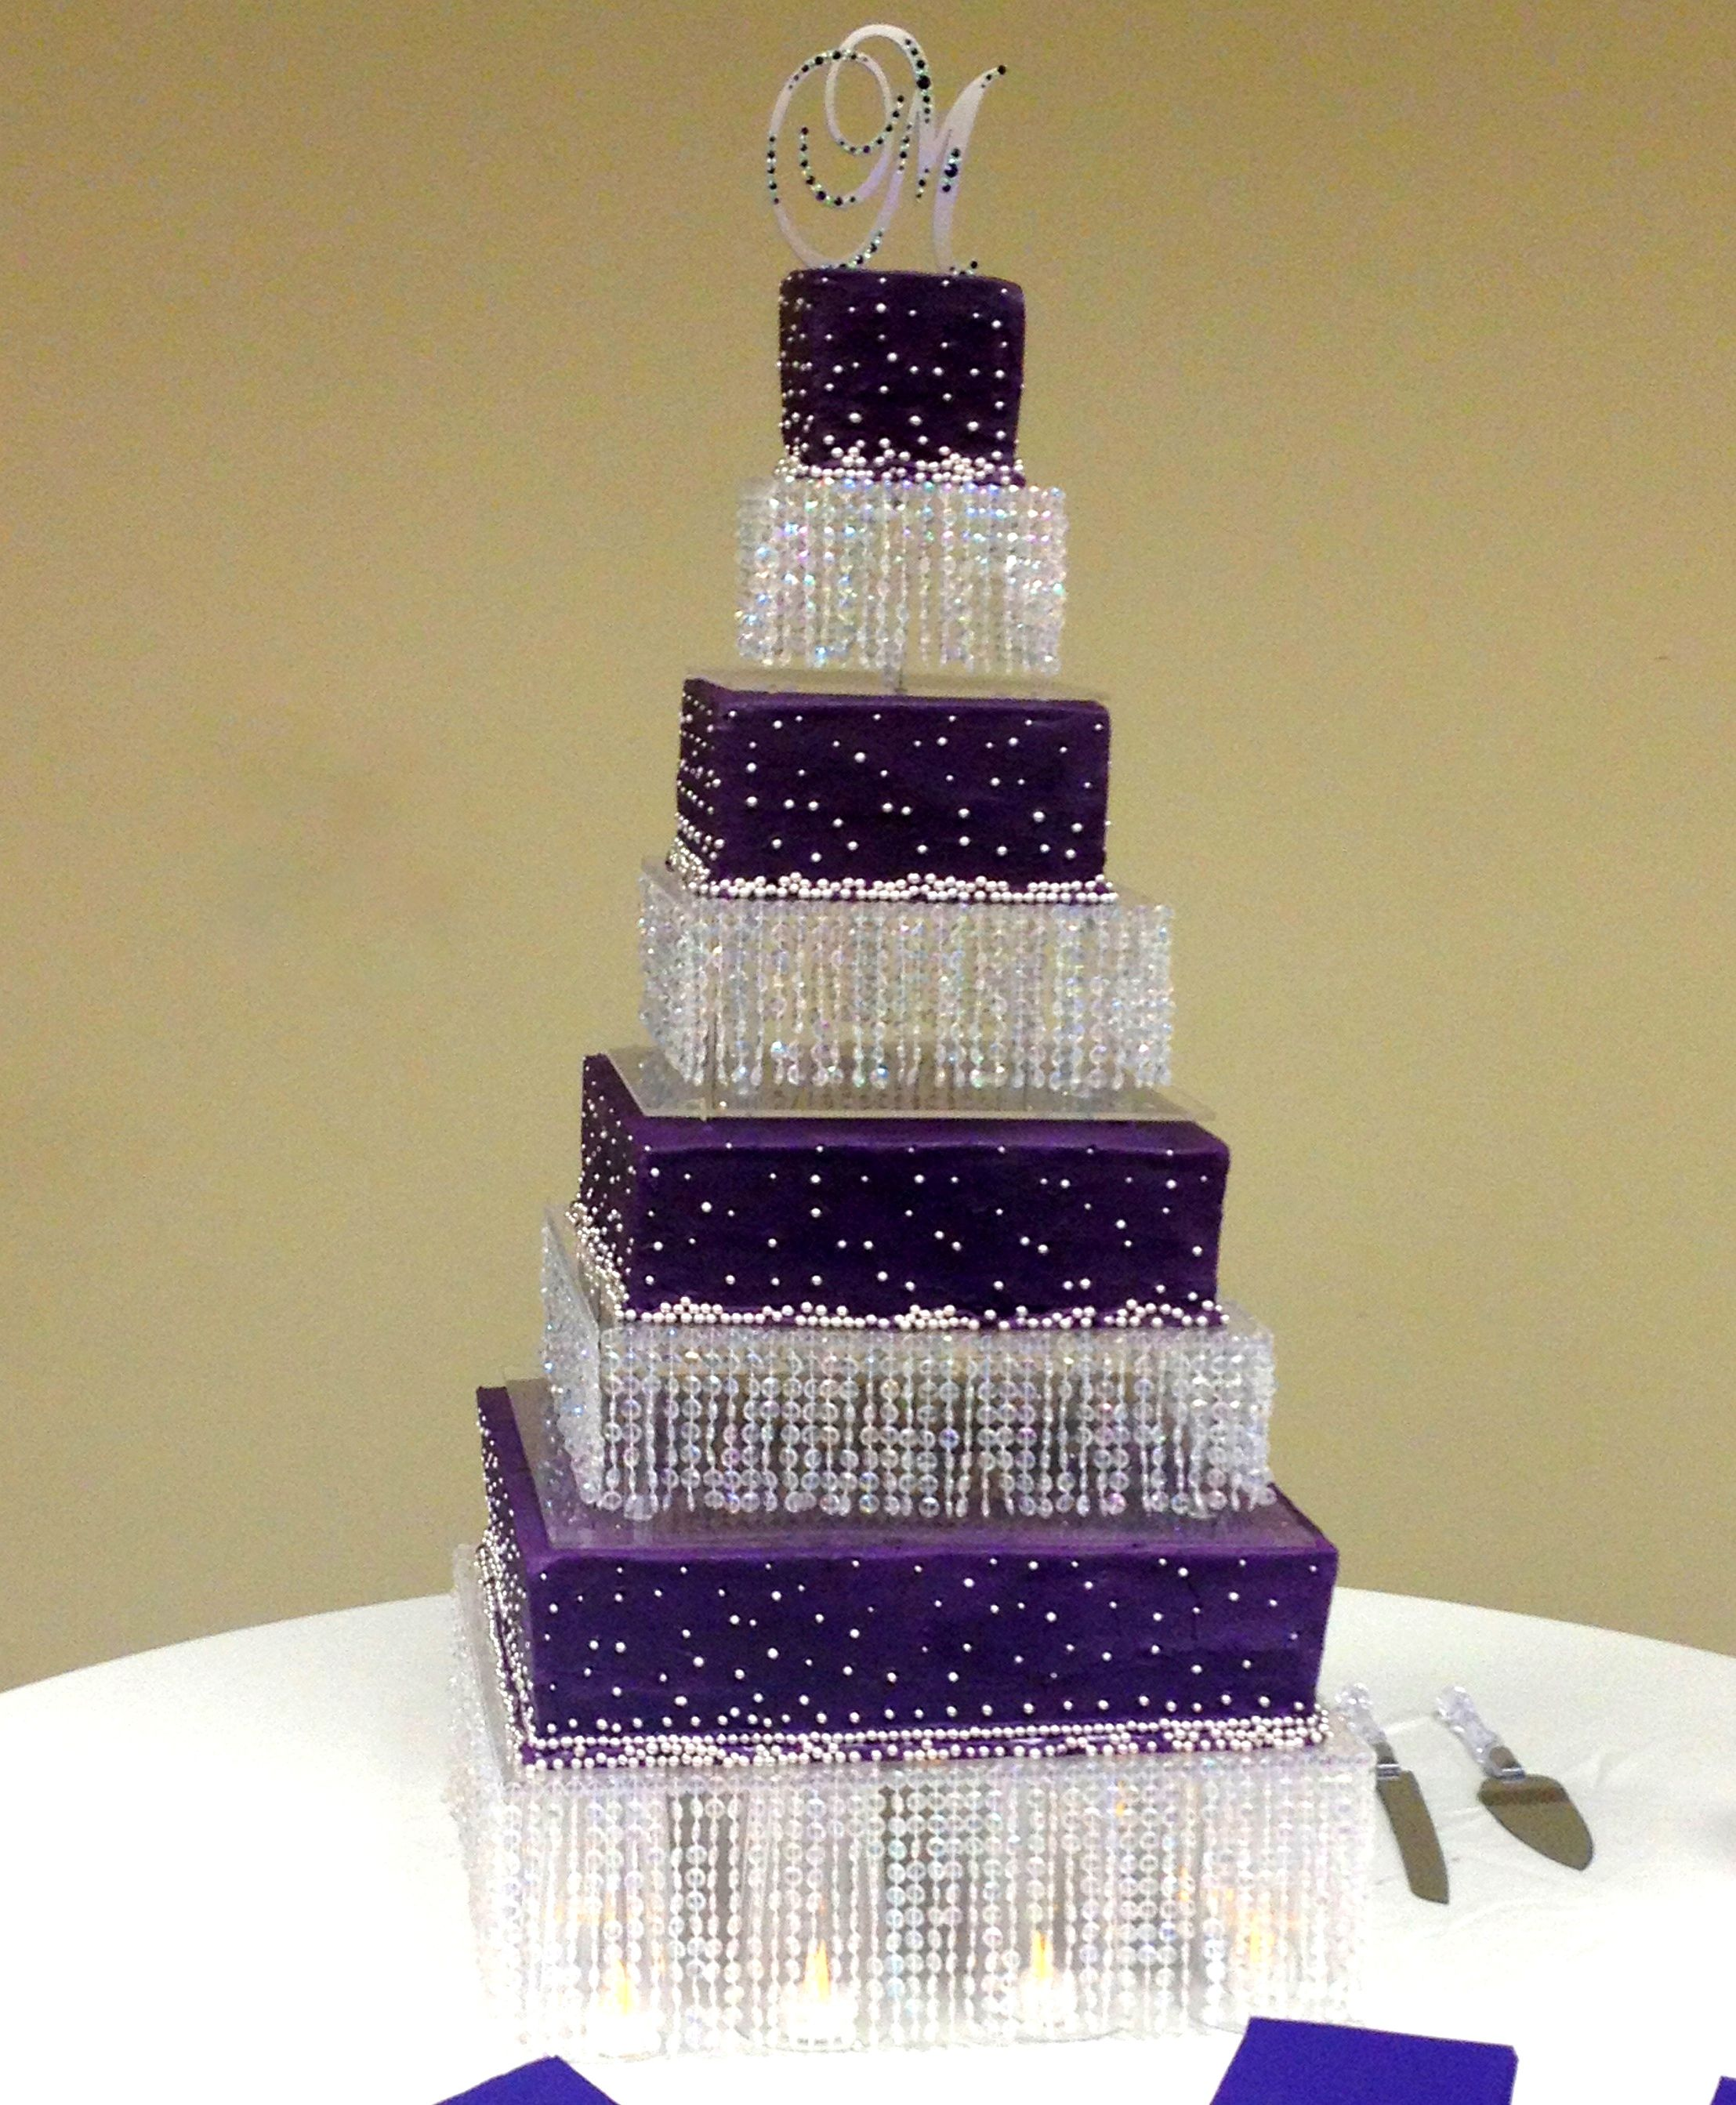 Fabulous bling wedding cake in a deep eggplant purple with